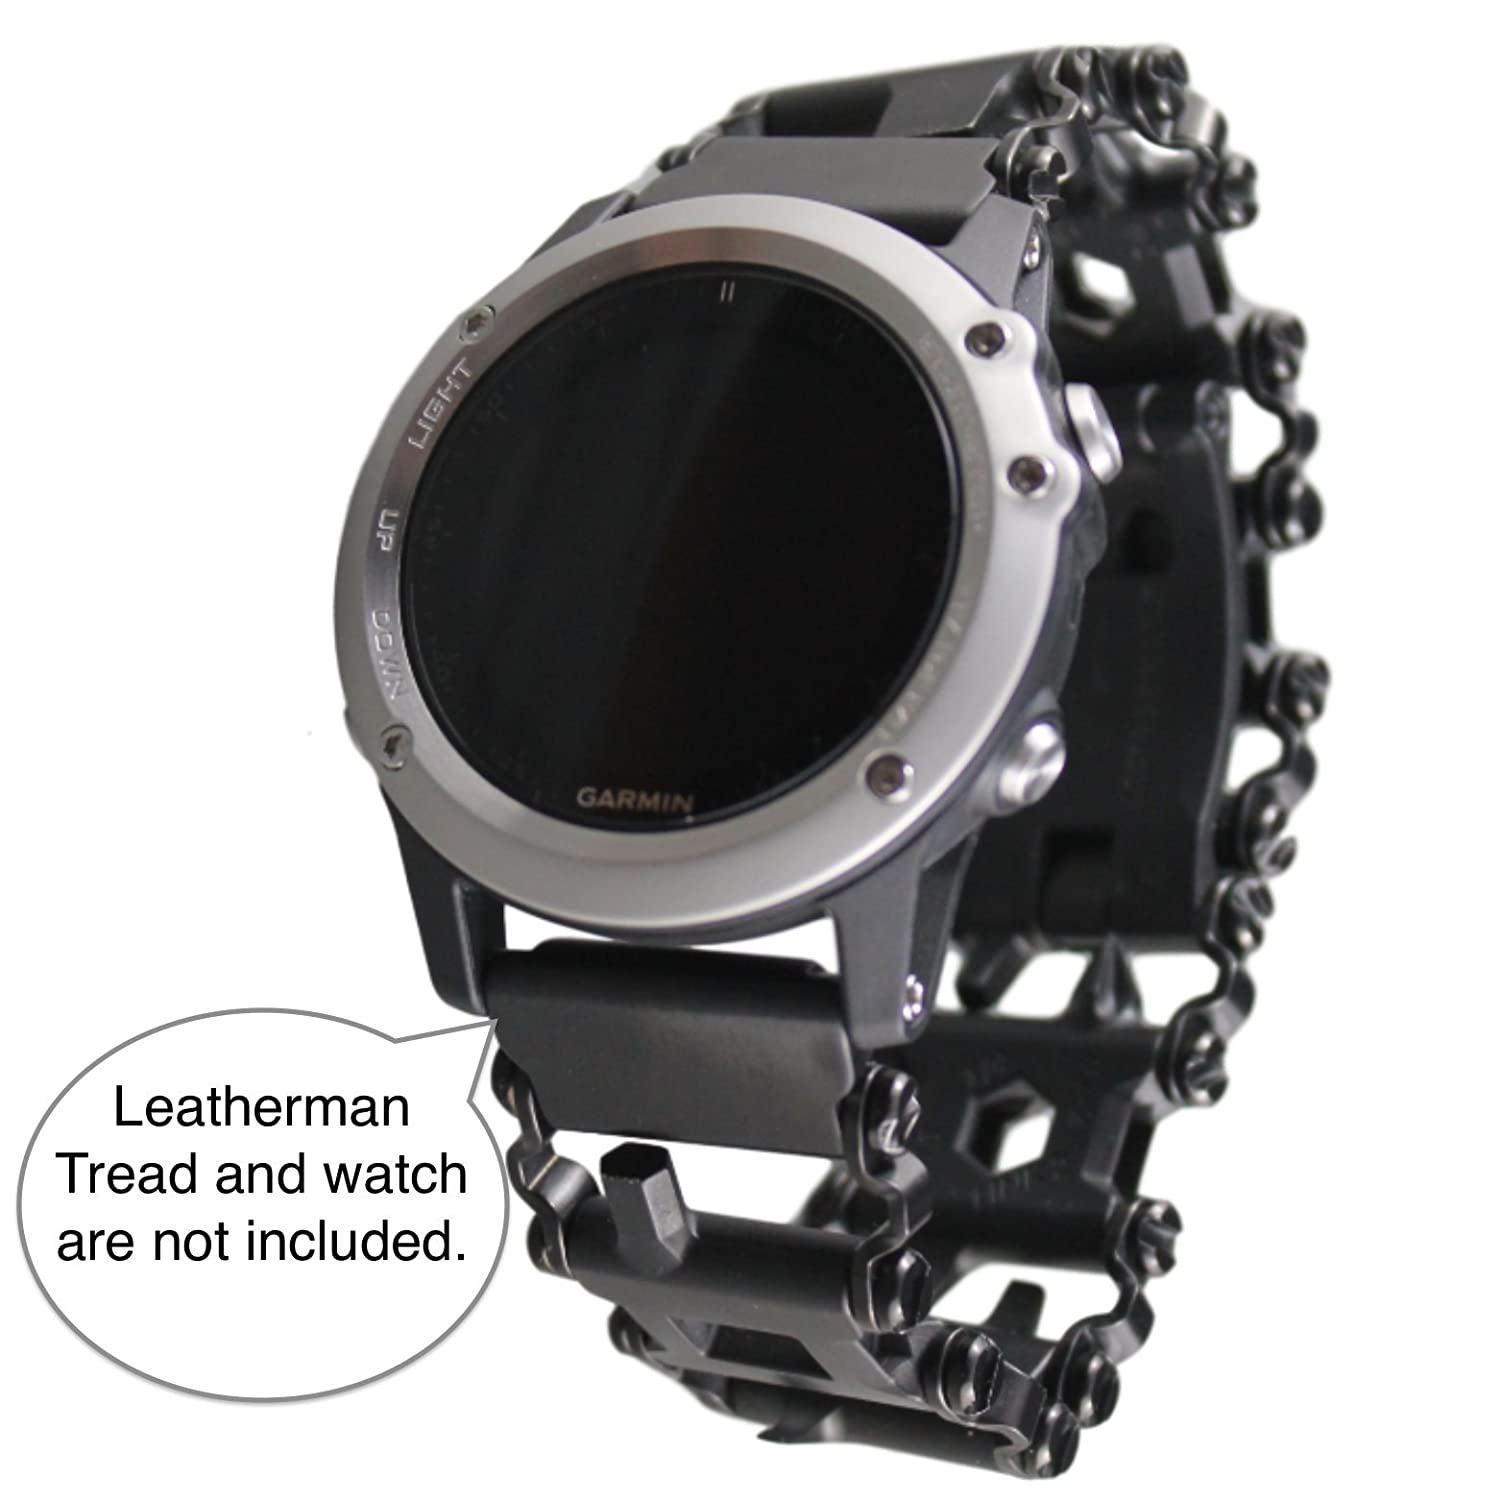 BestTechTool LEATHERMAN Tread Watch Adapter for GARMIN - Leatherman watch link - BTT adapter for GARMIN watches (Fenix 5x; Fenix 3, 3HR, 3Sapphire, ...